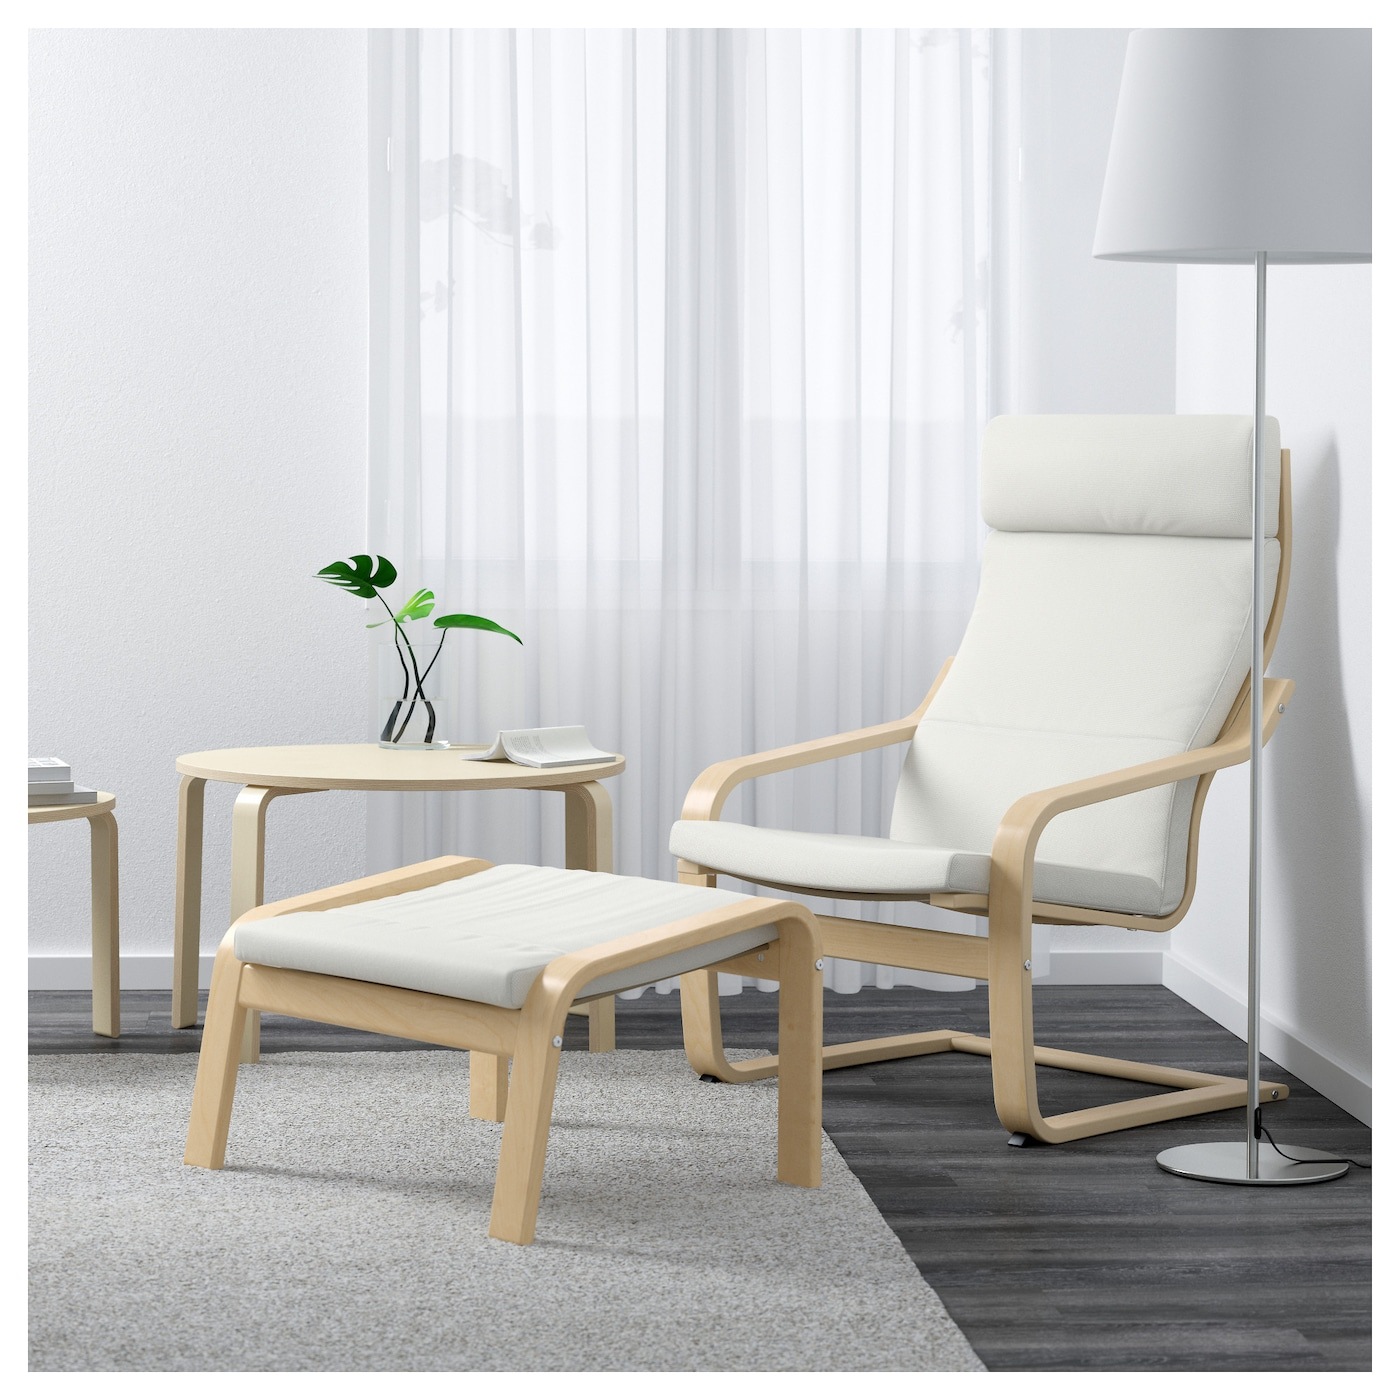 po ng fauteuil plaqu bouleau finnsta blanc ikea. Black Bedroom Furniture Sets. Home Design Ideas